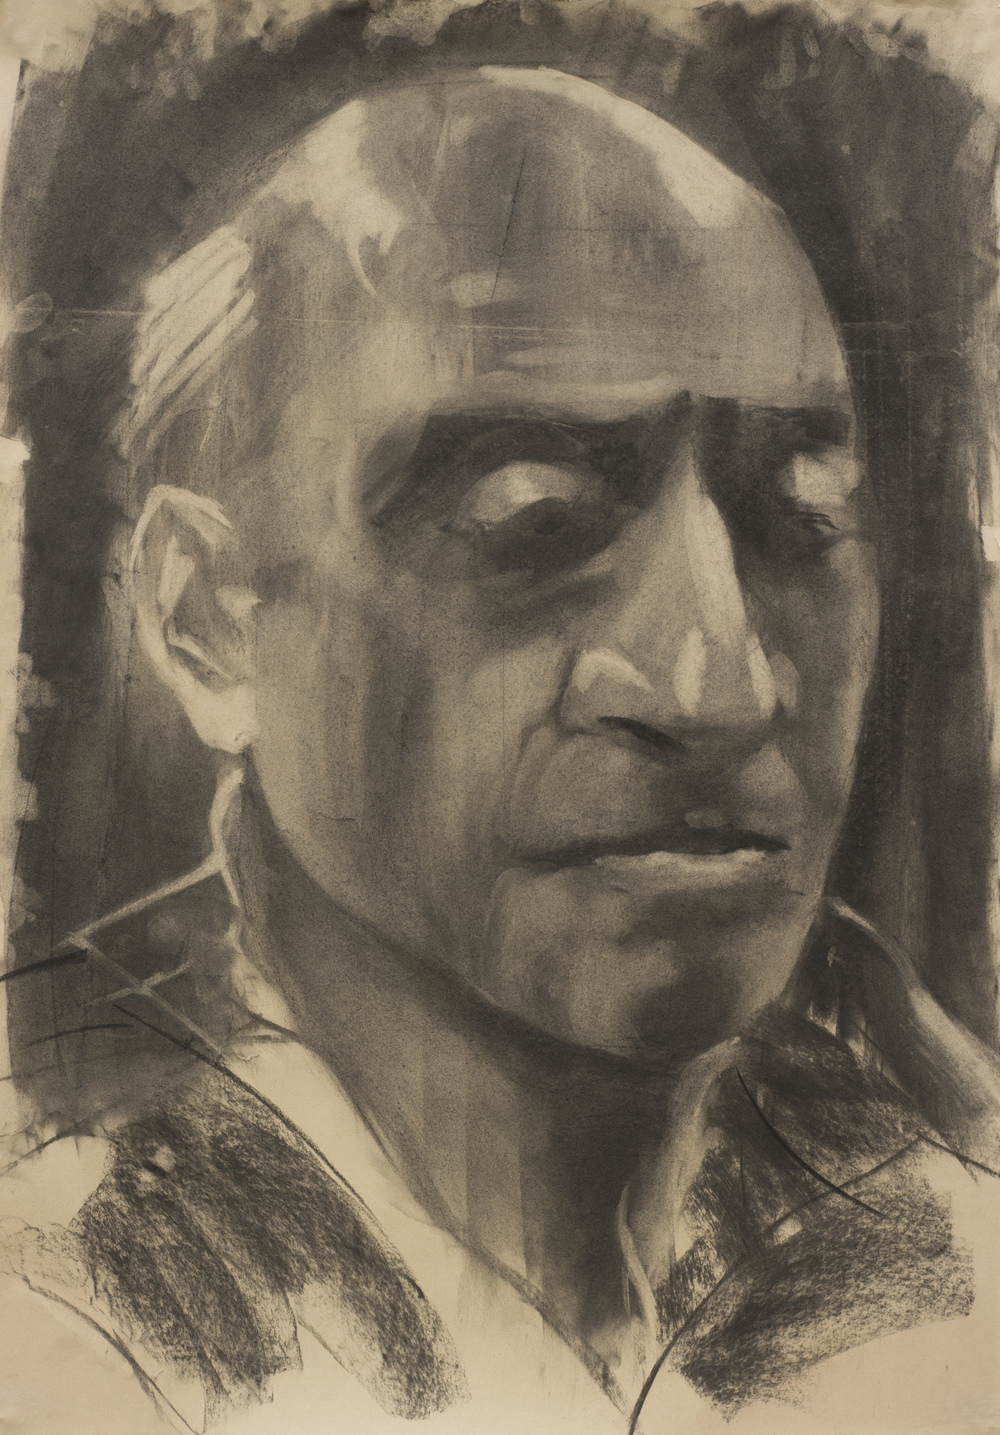 09_Drawing A Head_59x84_Charcoal.JPG